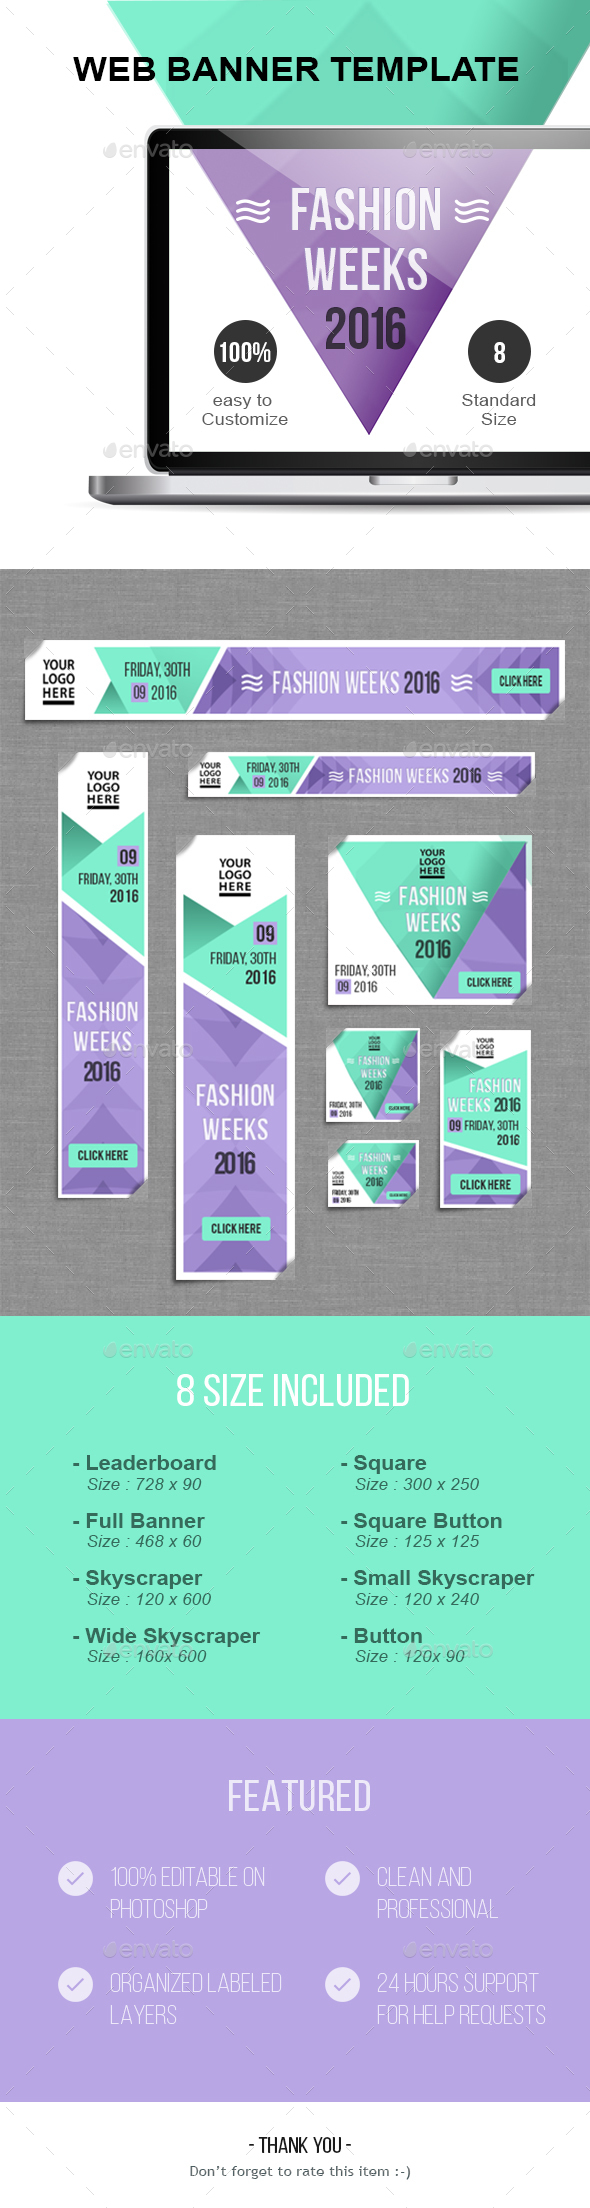 Fashion Weeks Baner Template - Banners & Ads Web Elements